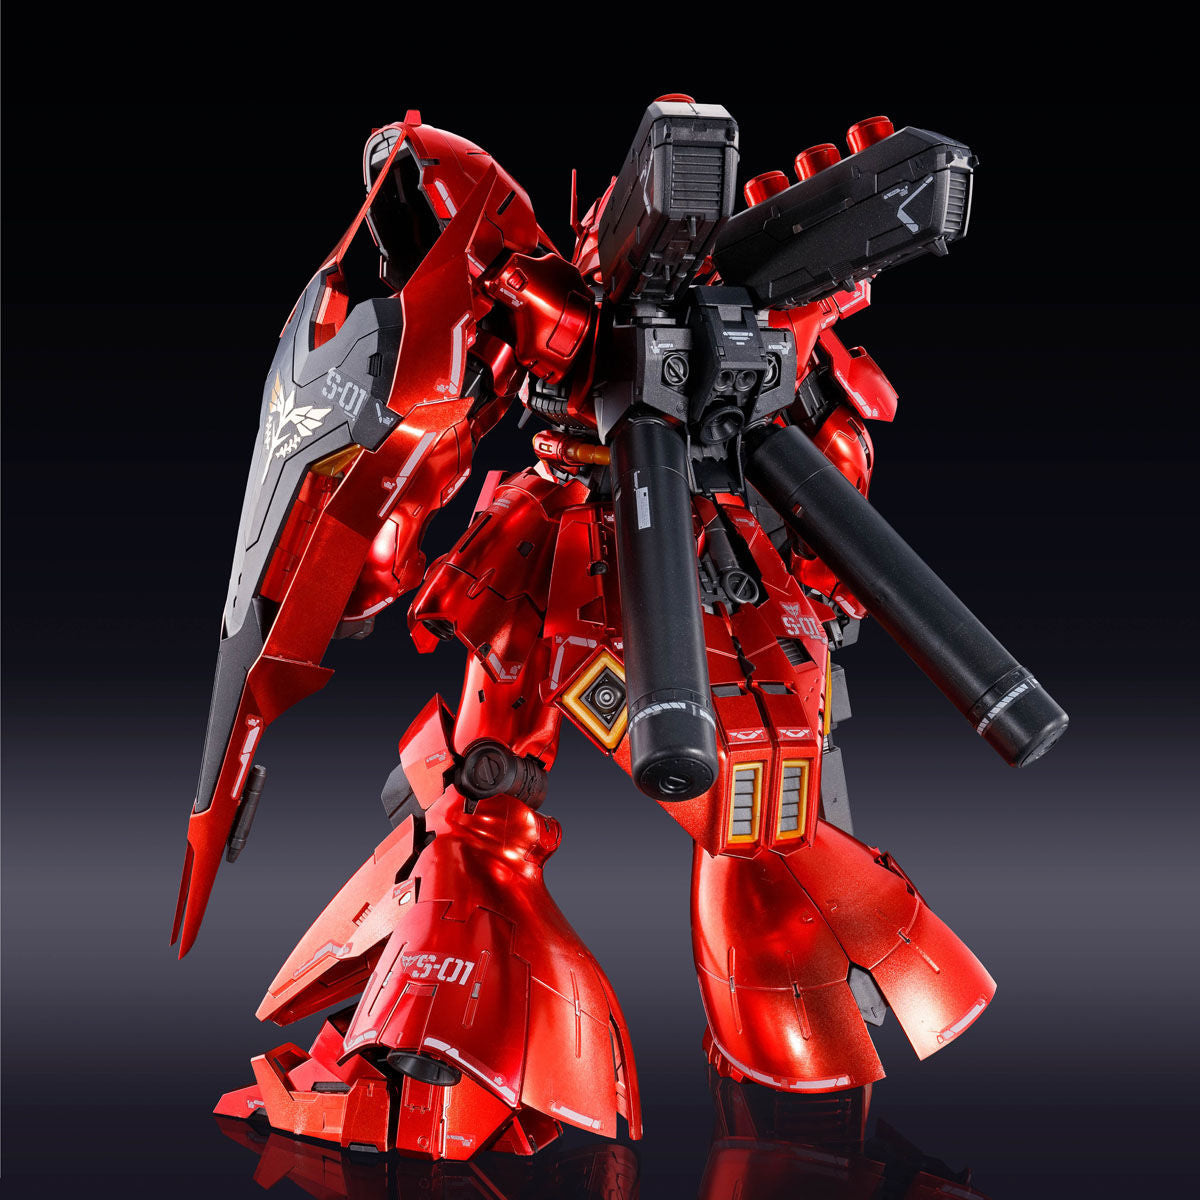 P-Bandai: RG 1/144 MSN-04 Sazabi Special Coating [End of December]